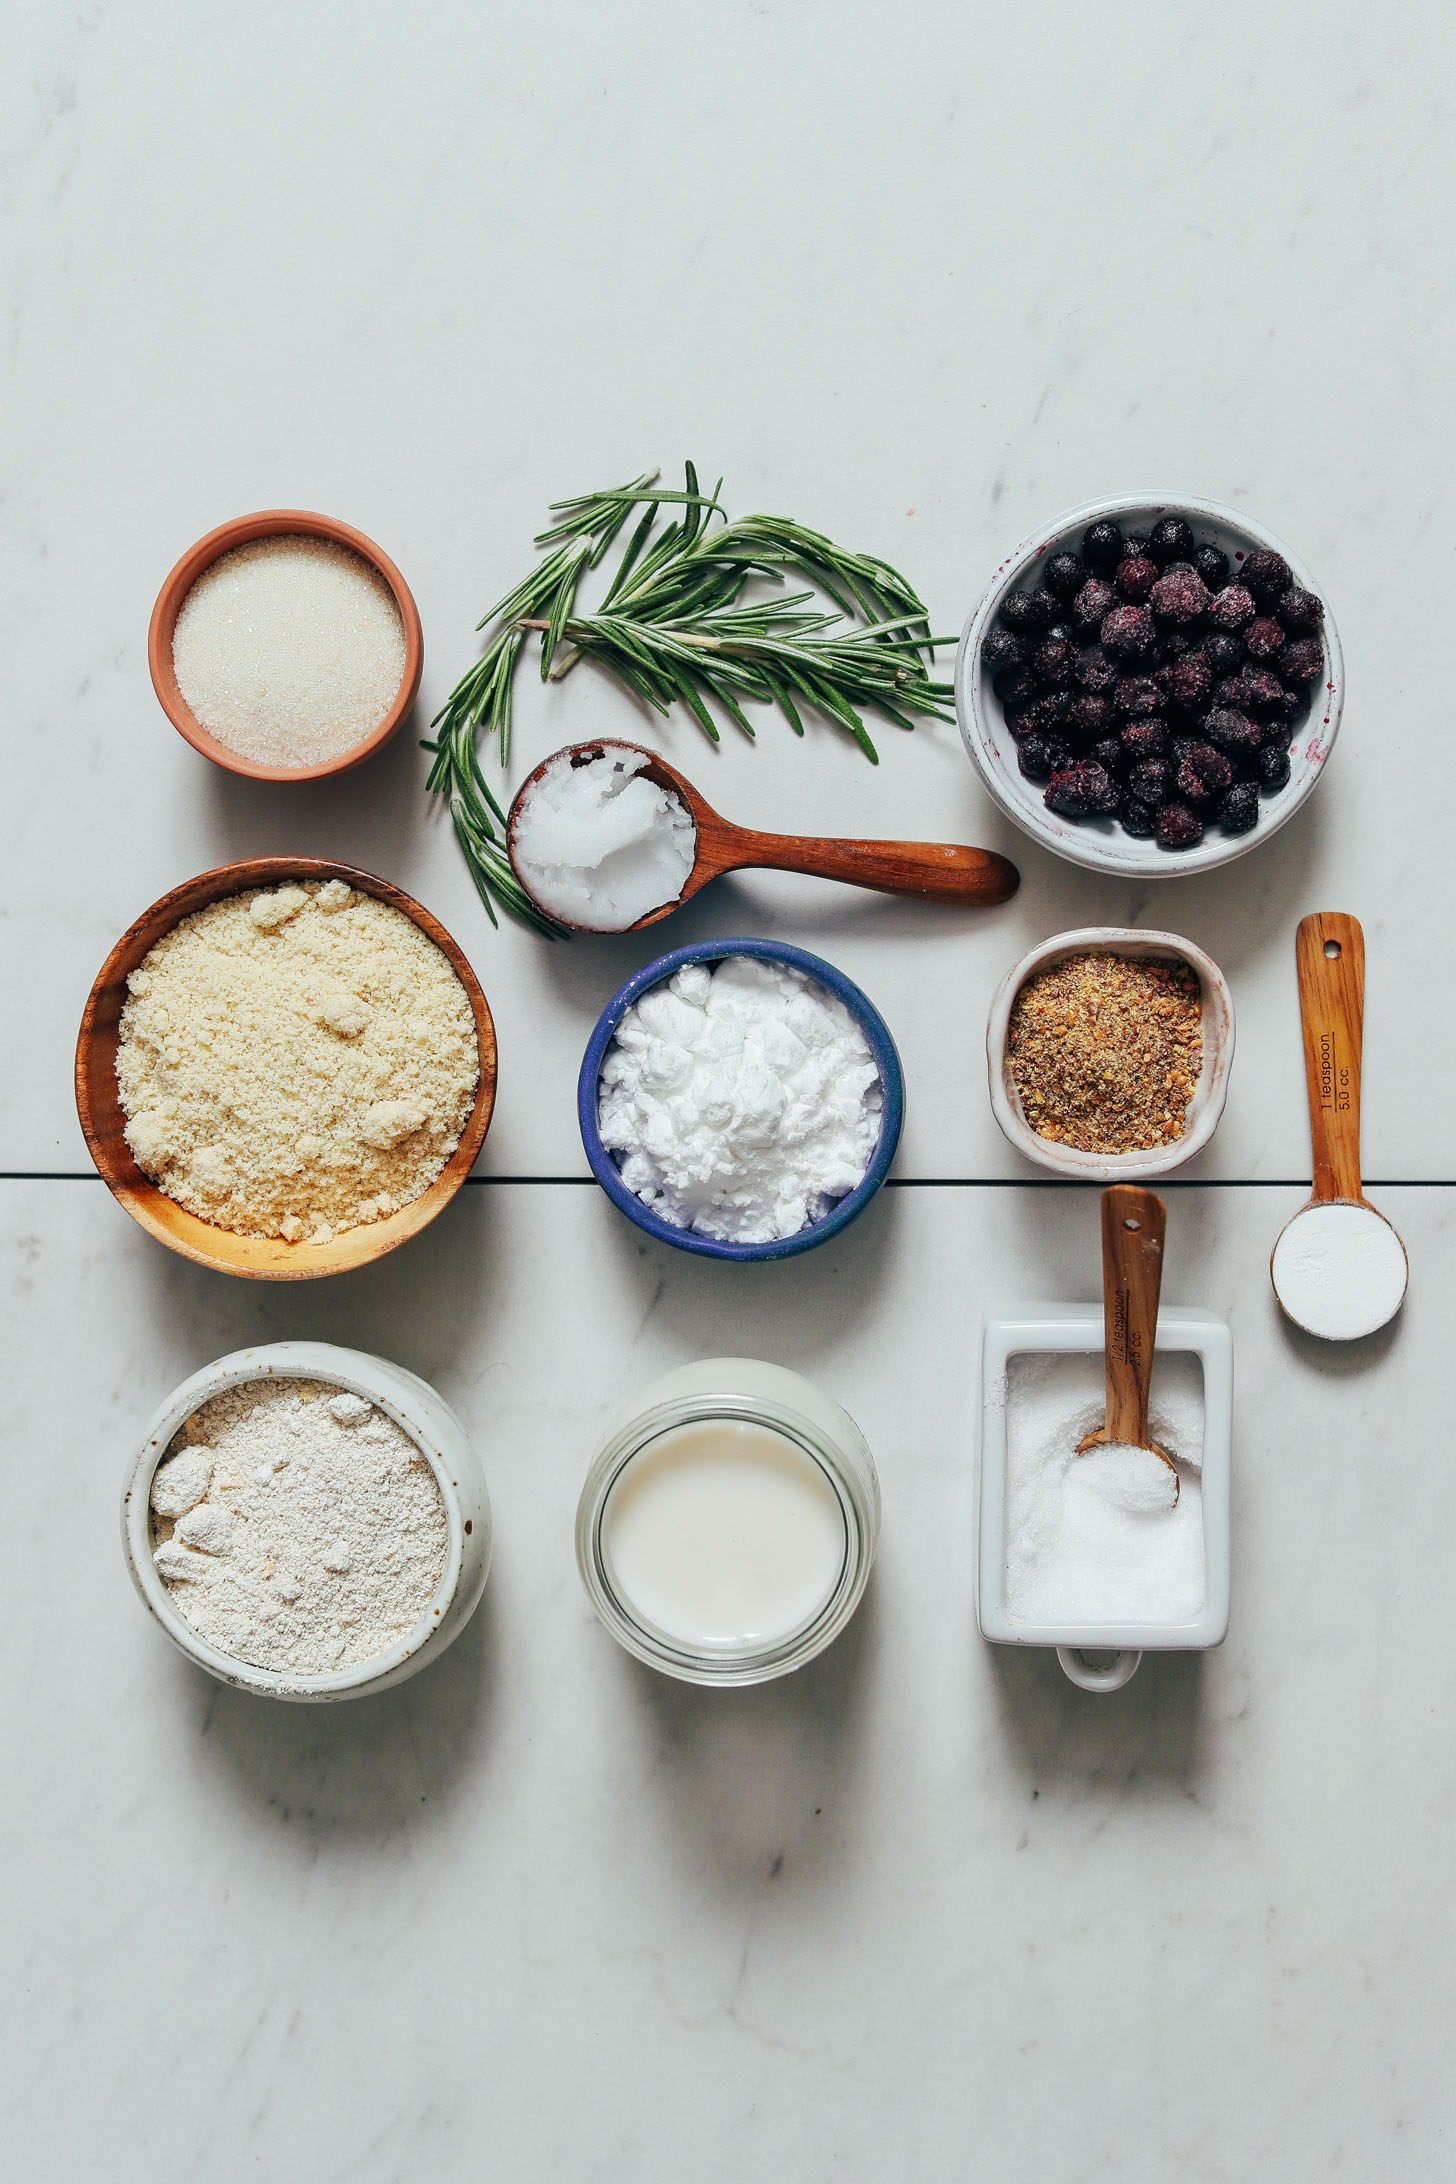 Dairy-free milk, gluten-free flours, coconut oil, flax, salt, rosemary, and wild blueberries